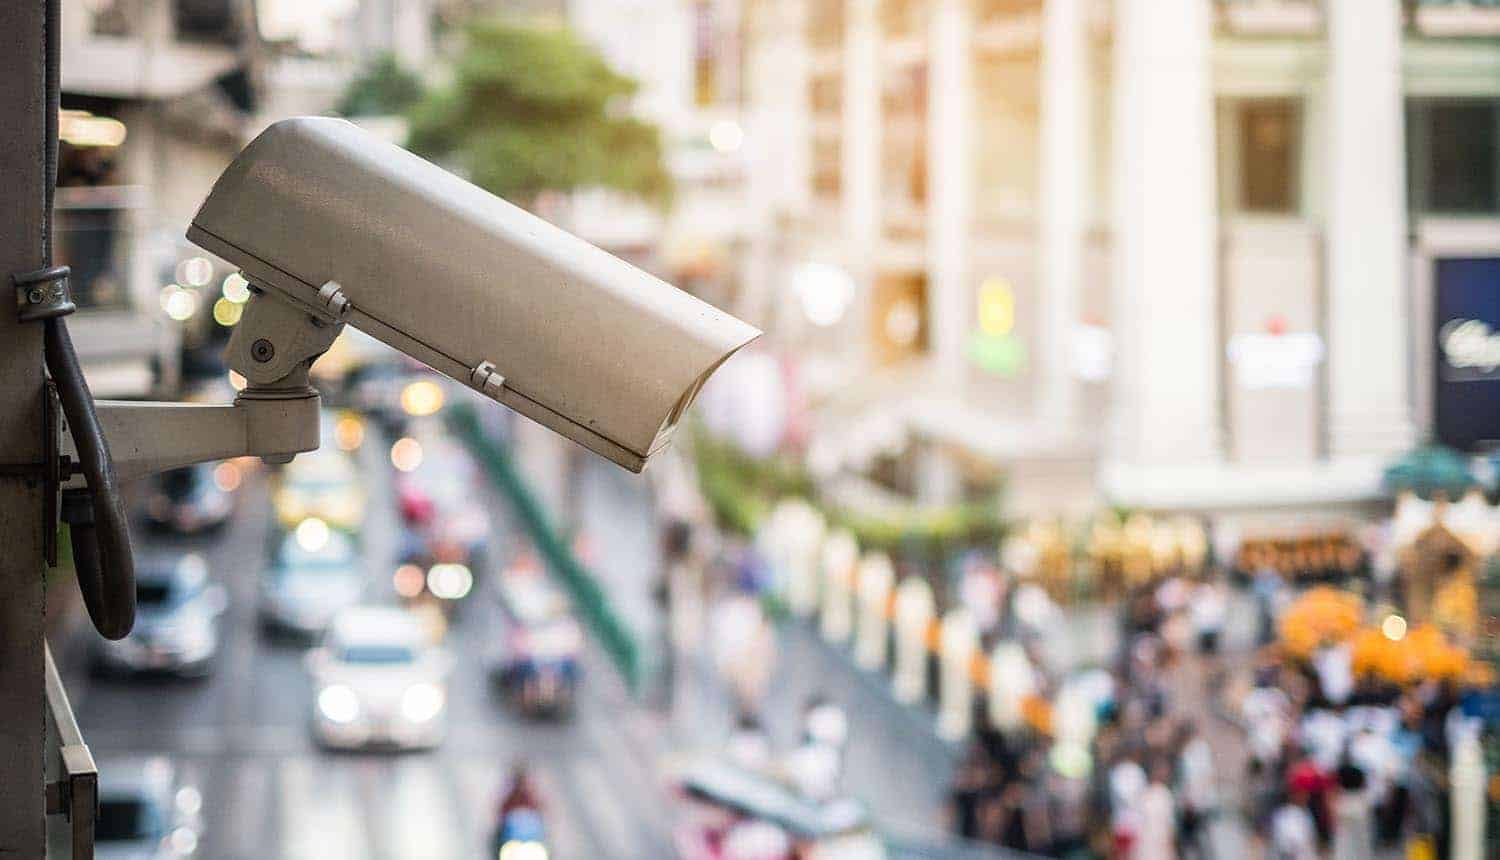 Closeup of security surveillance cameras on the road in the big city showing data breach and facial recognition issues